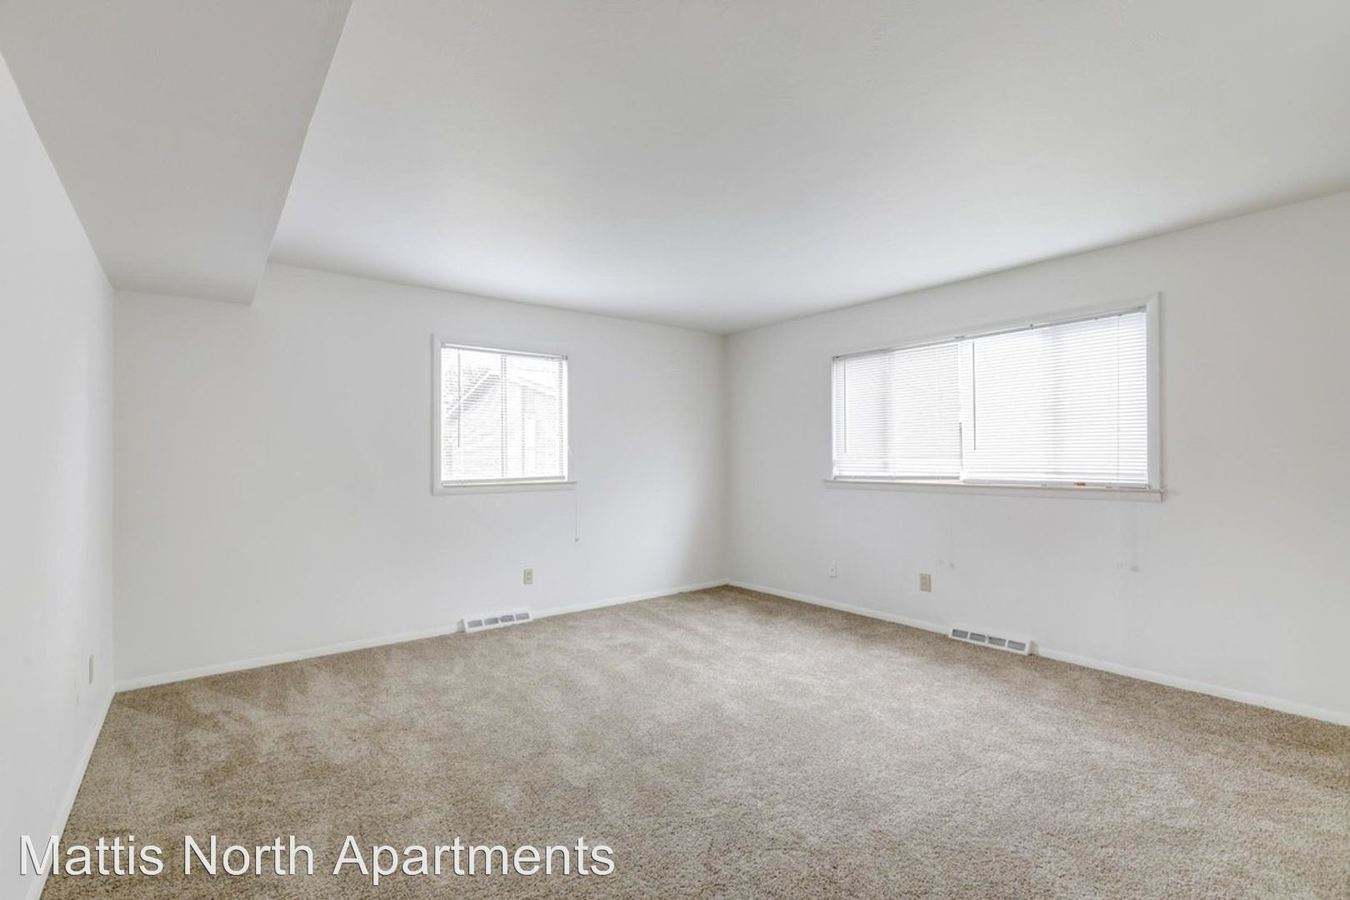 3 Bedrooms 1 Bathroom Apartment for rent at 2006 N. Mattis Avenue in Champaign, IL